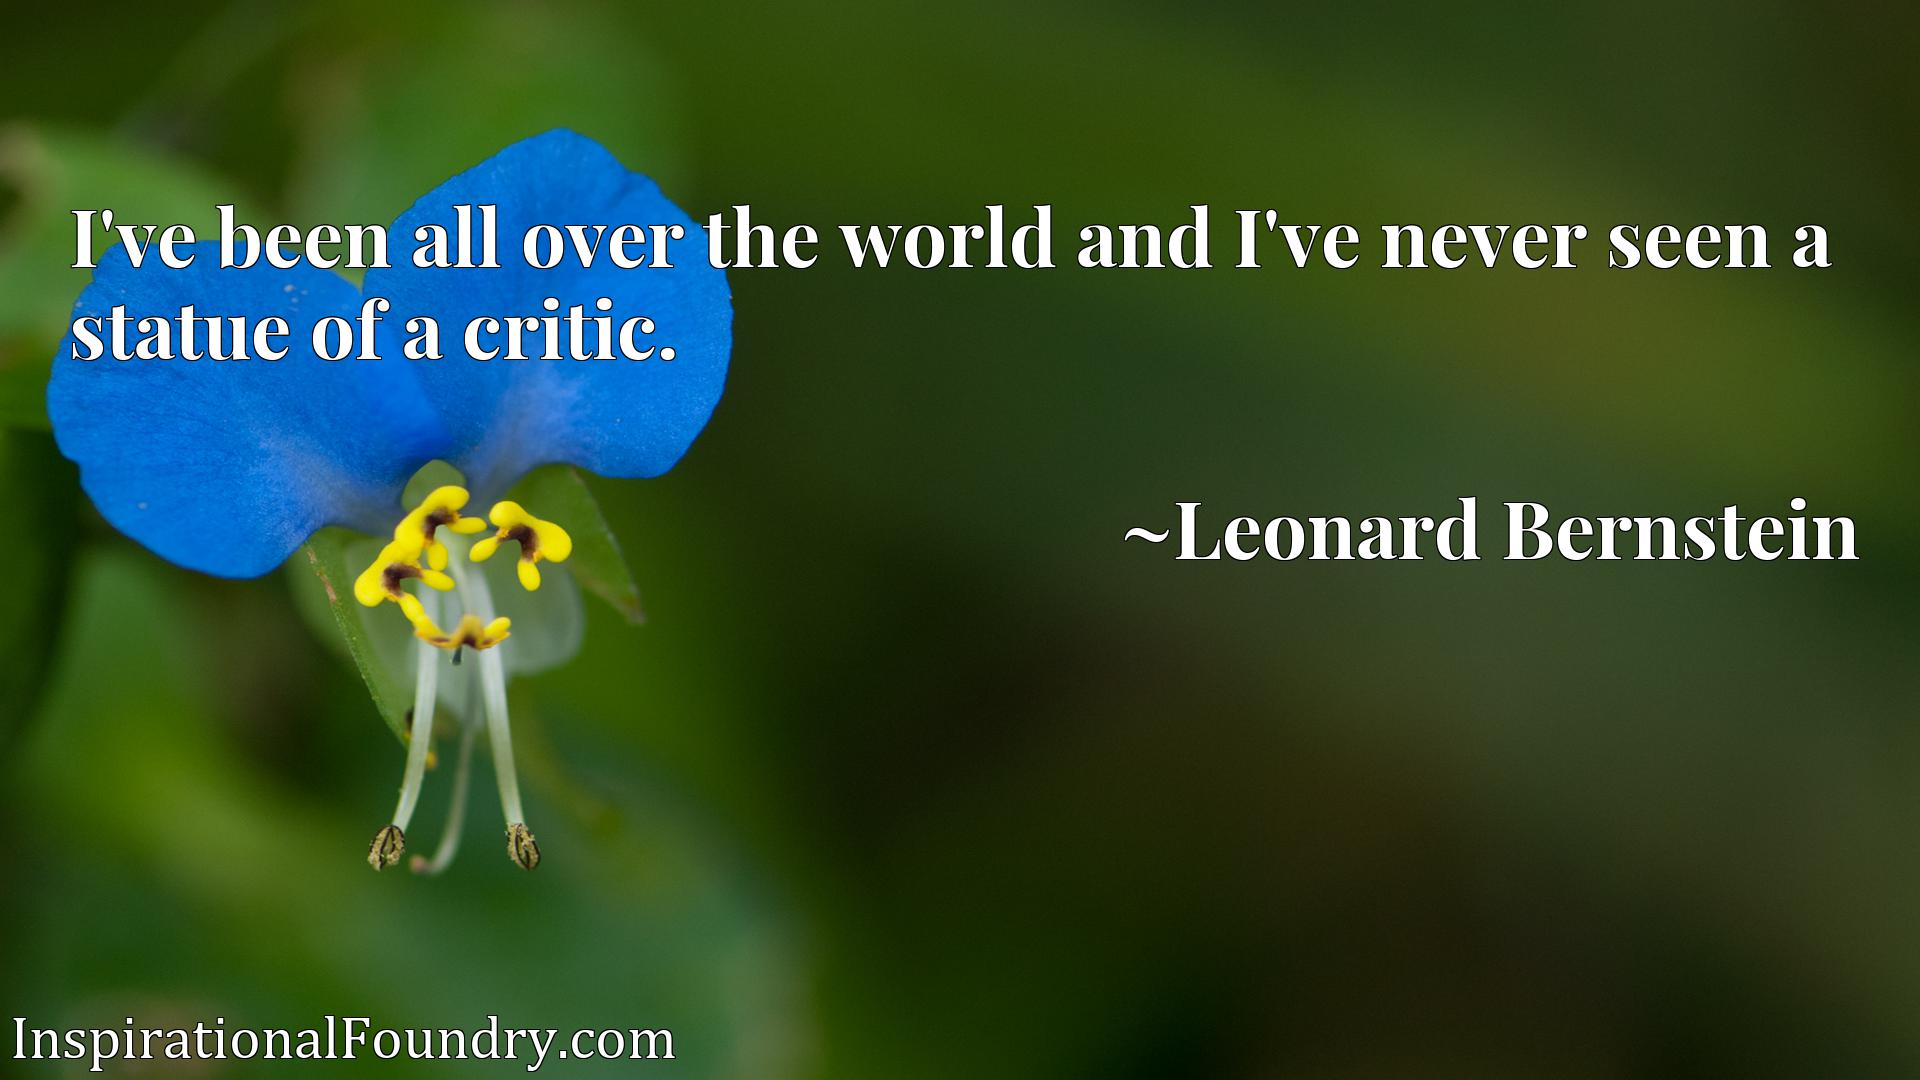 Quote Picture :I've been all over the world and I've never seen a statue of a critic.